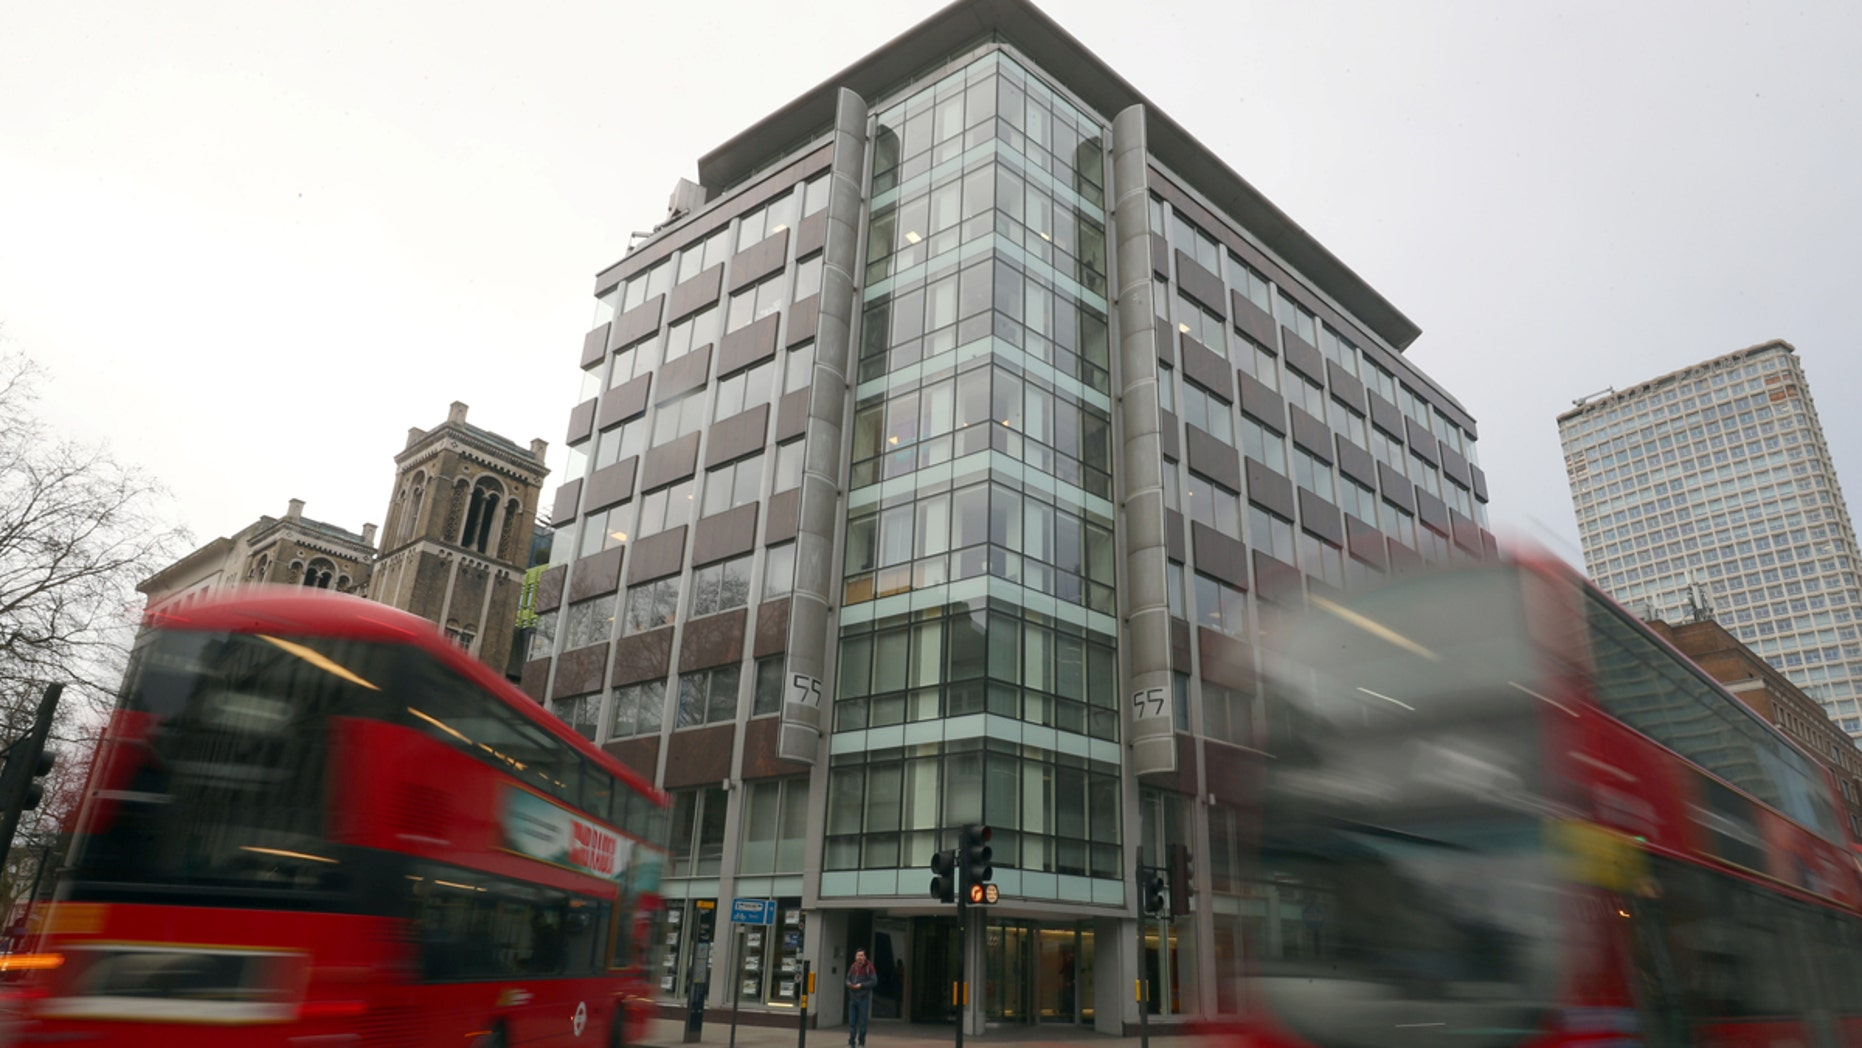 The office of Cambridge Analytica, which is embroiled in a scandal involving the data of 50 million Facebook users, is seen in London.